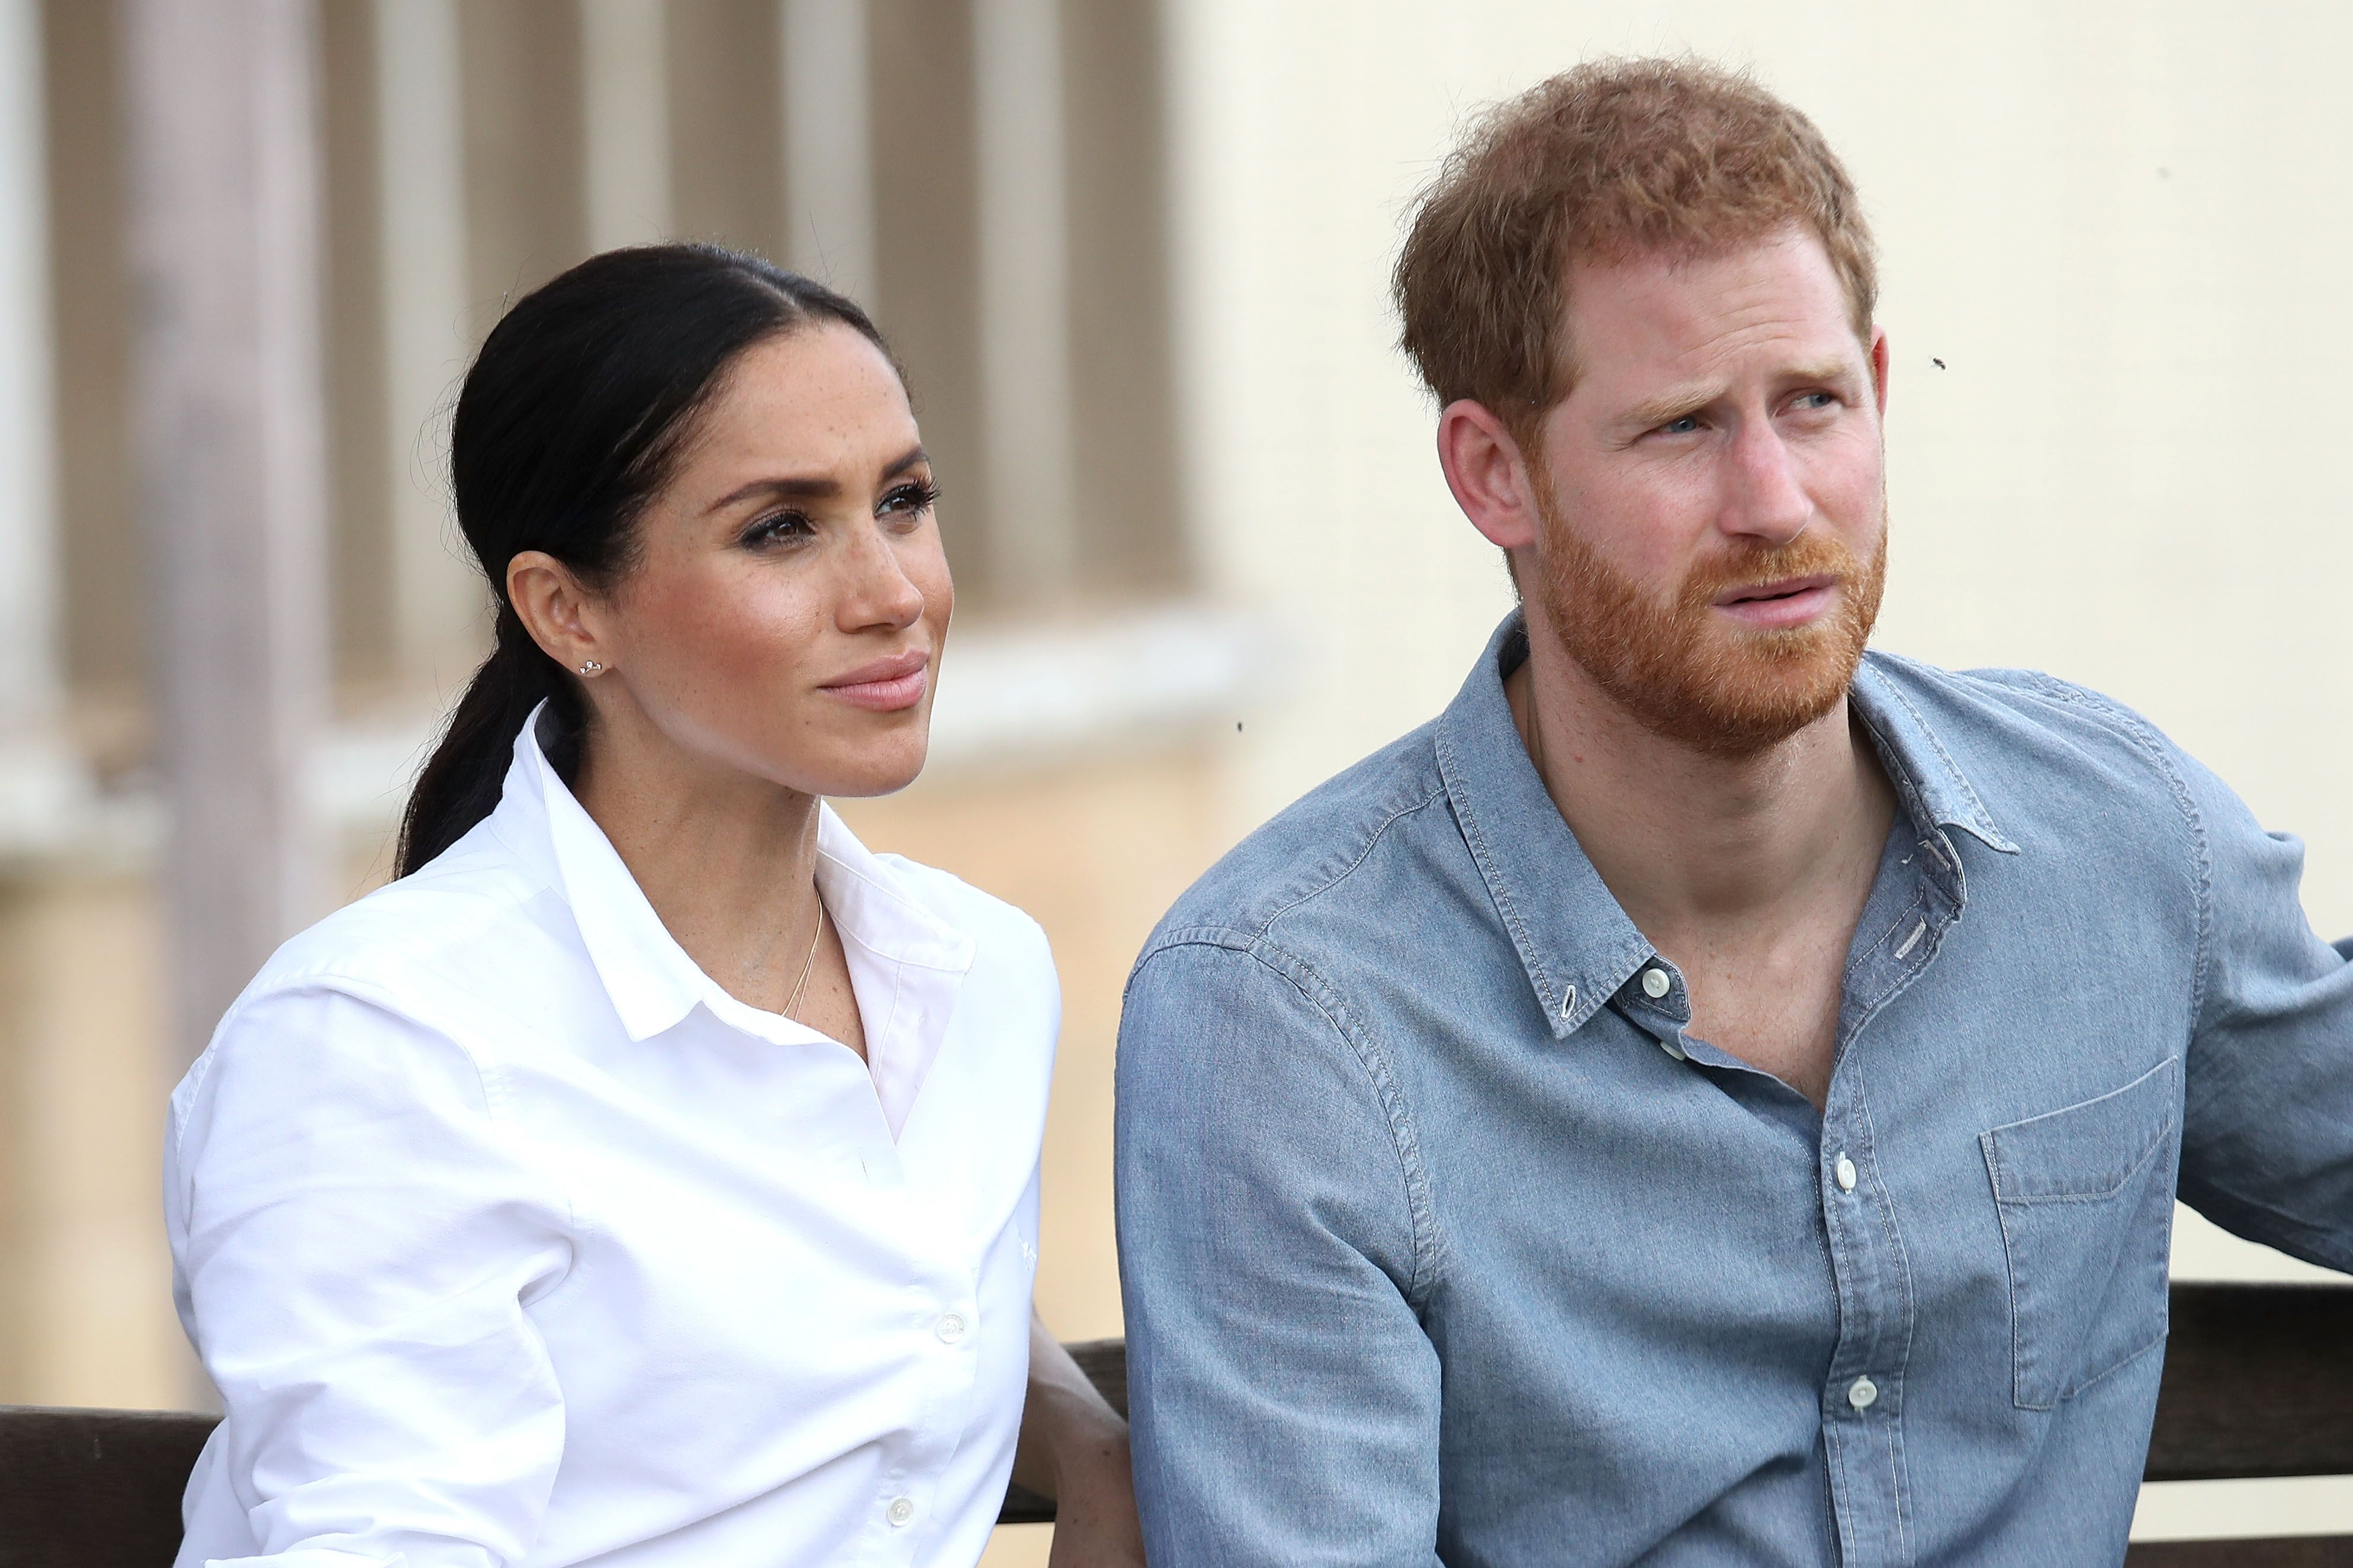 Prince Harry Reads the Comments in Press About Meghan Markle